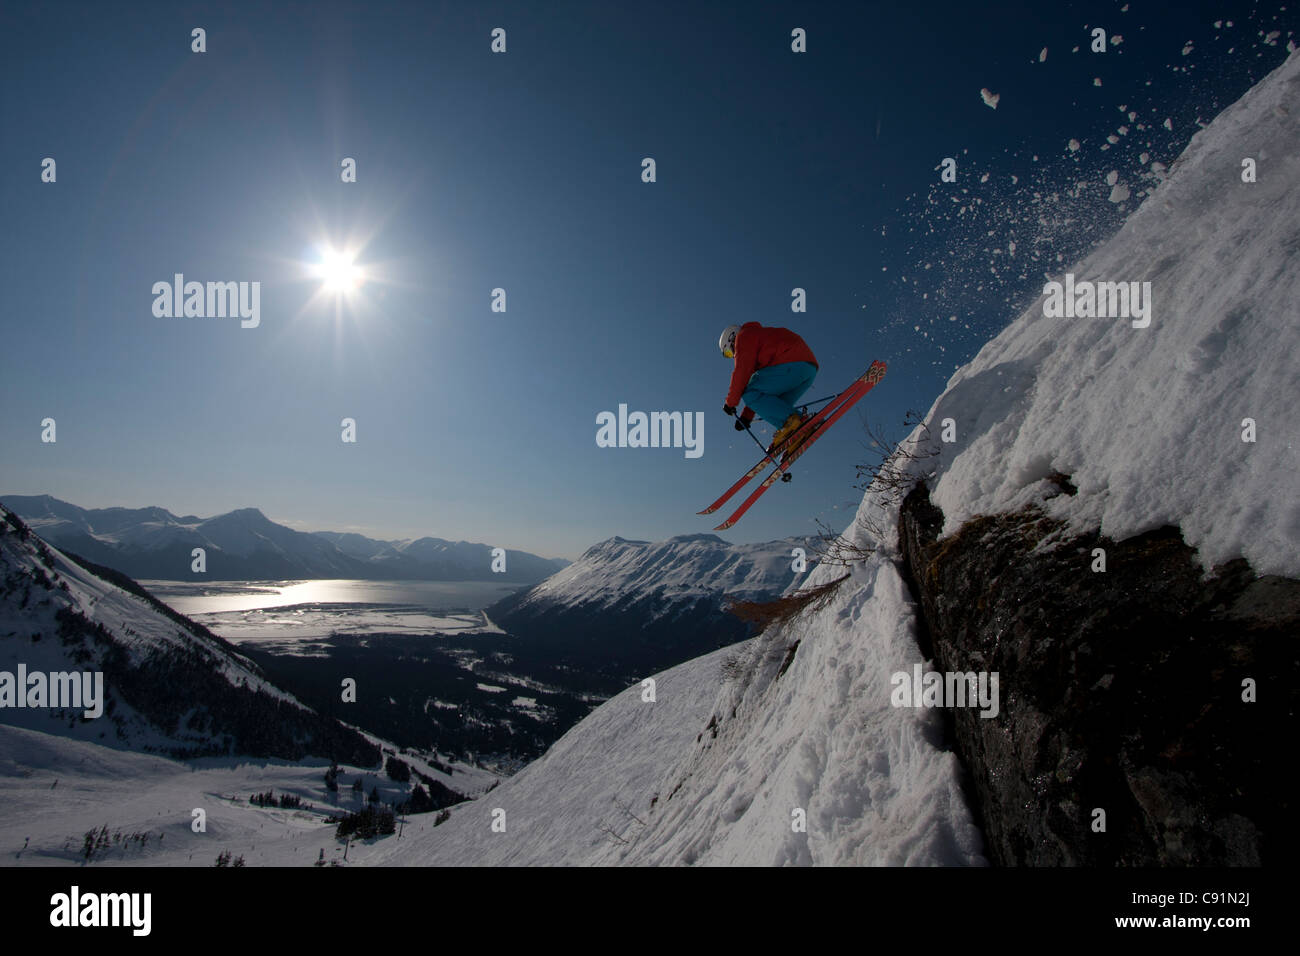 Silhouette of a downhill skier makes an extreme jump from a ledge while skiing at Alyeska Resort, Southcentral Alaska, - Stock Image